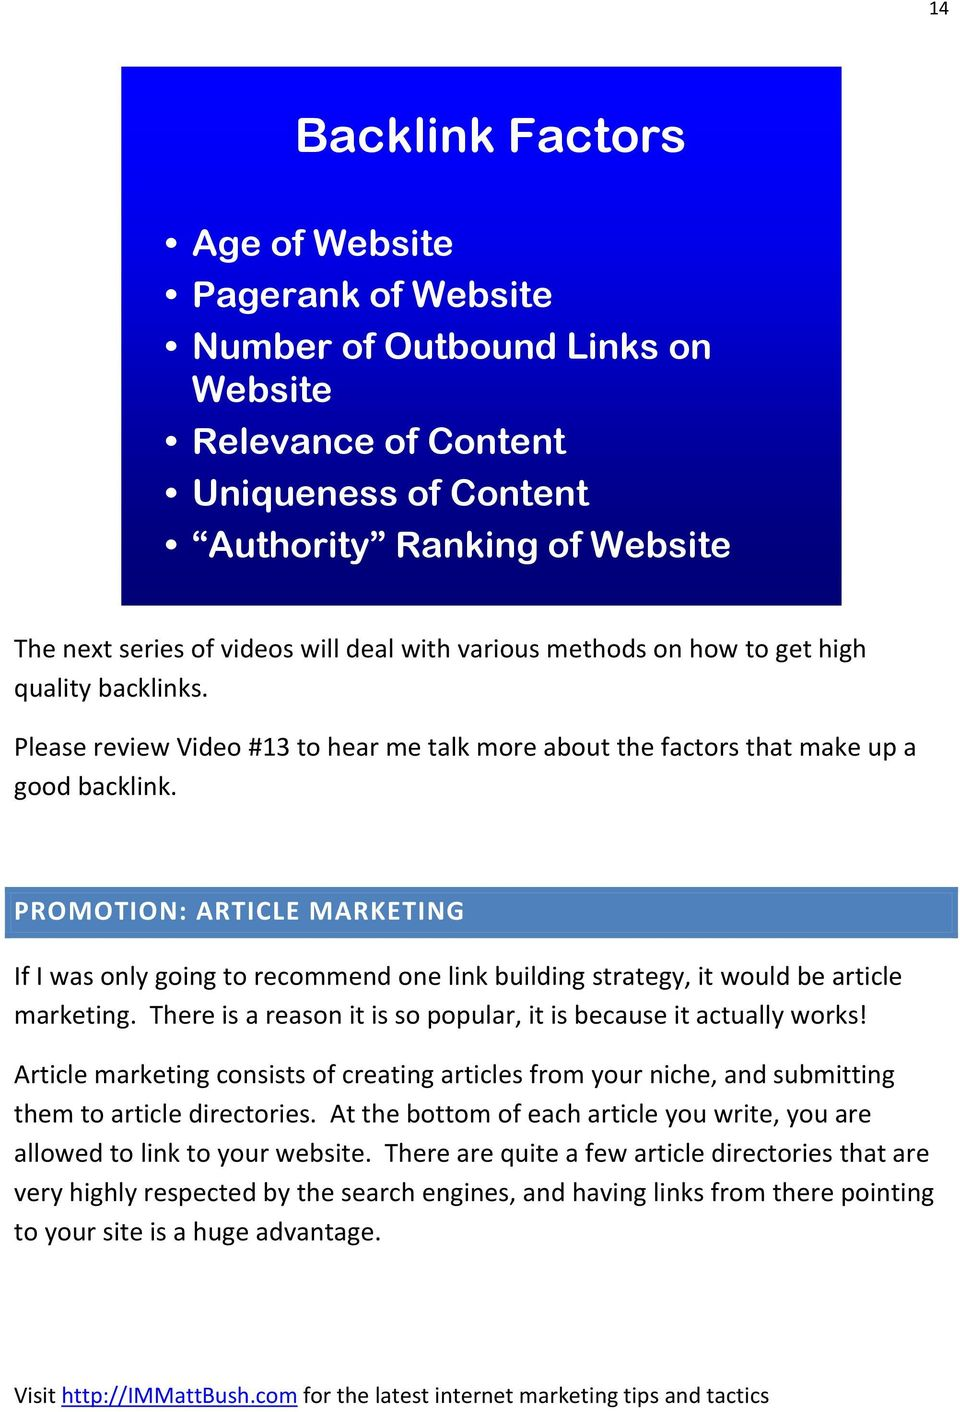 PROMOTION: ARTICLE MARKETING If I was only going to recommend one link building strategy, it would be article marketing. There is a reason it is so popular, it is because it actually works!